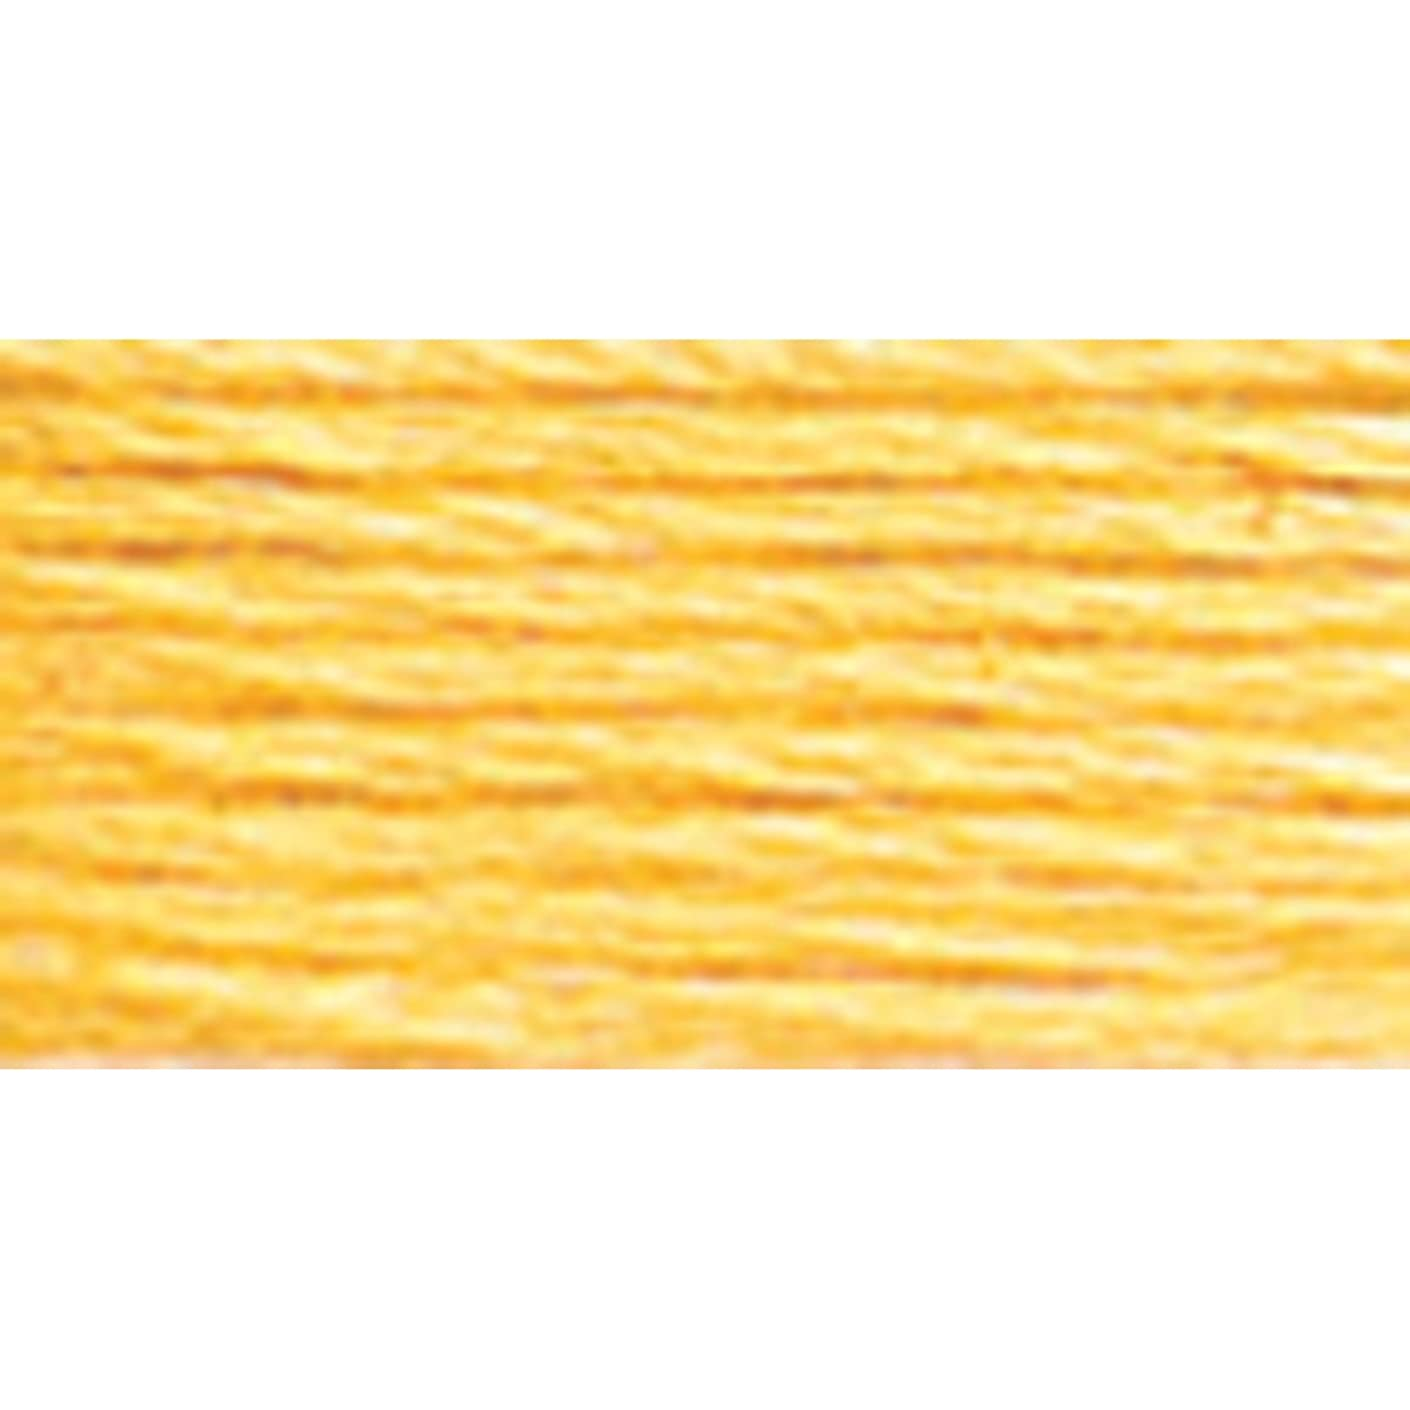 Dmc 6-Strand Embroidery Cotton 8.7yd-Pale Yellow